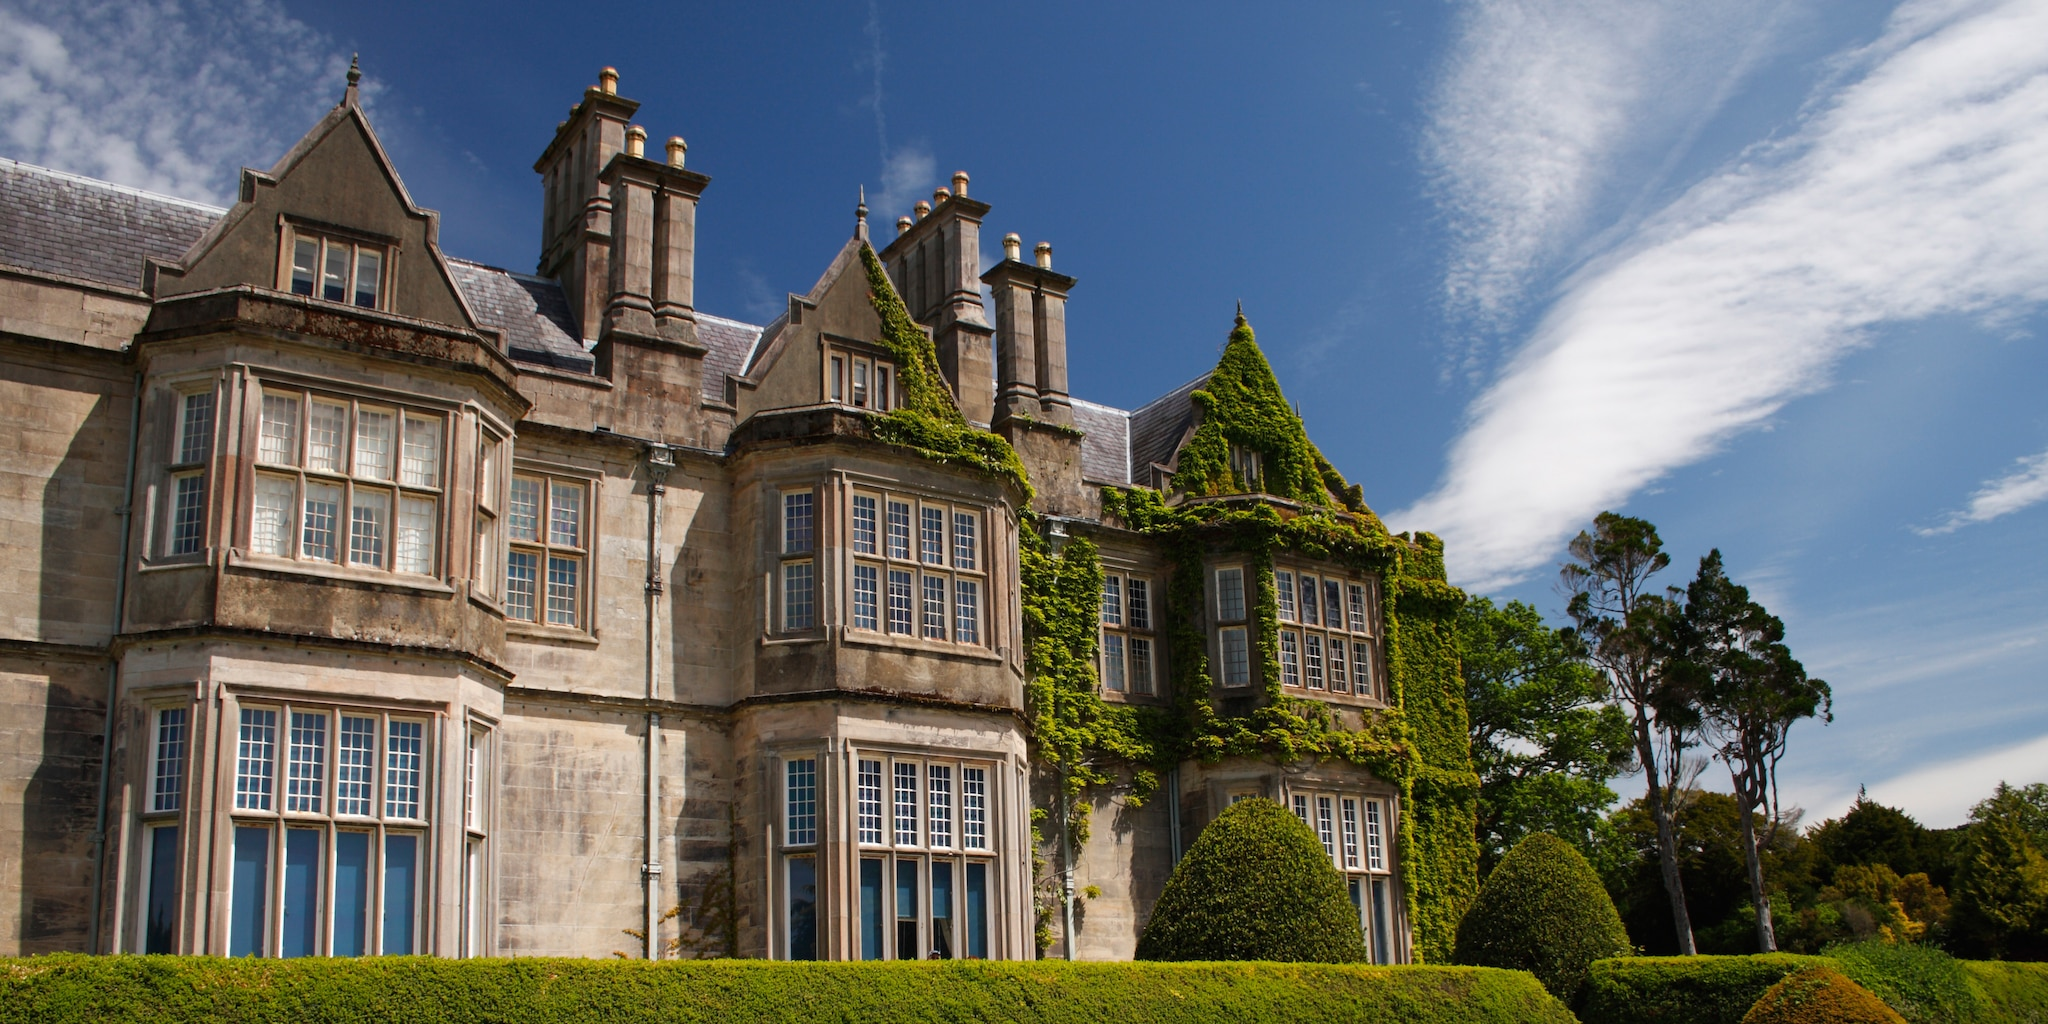 Visit the Muckross House on the Ireland vacation